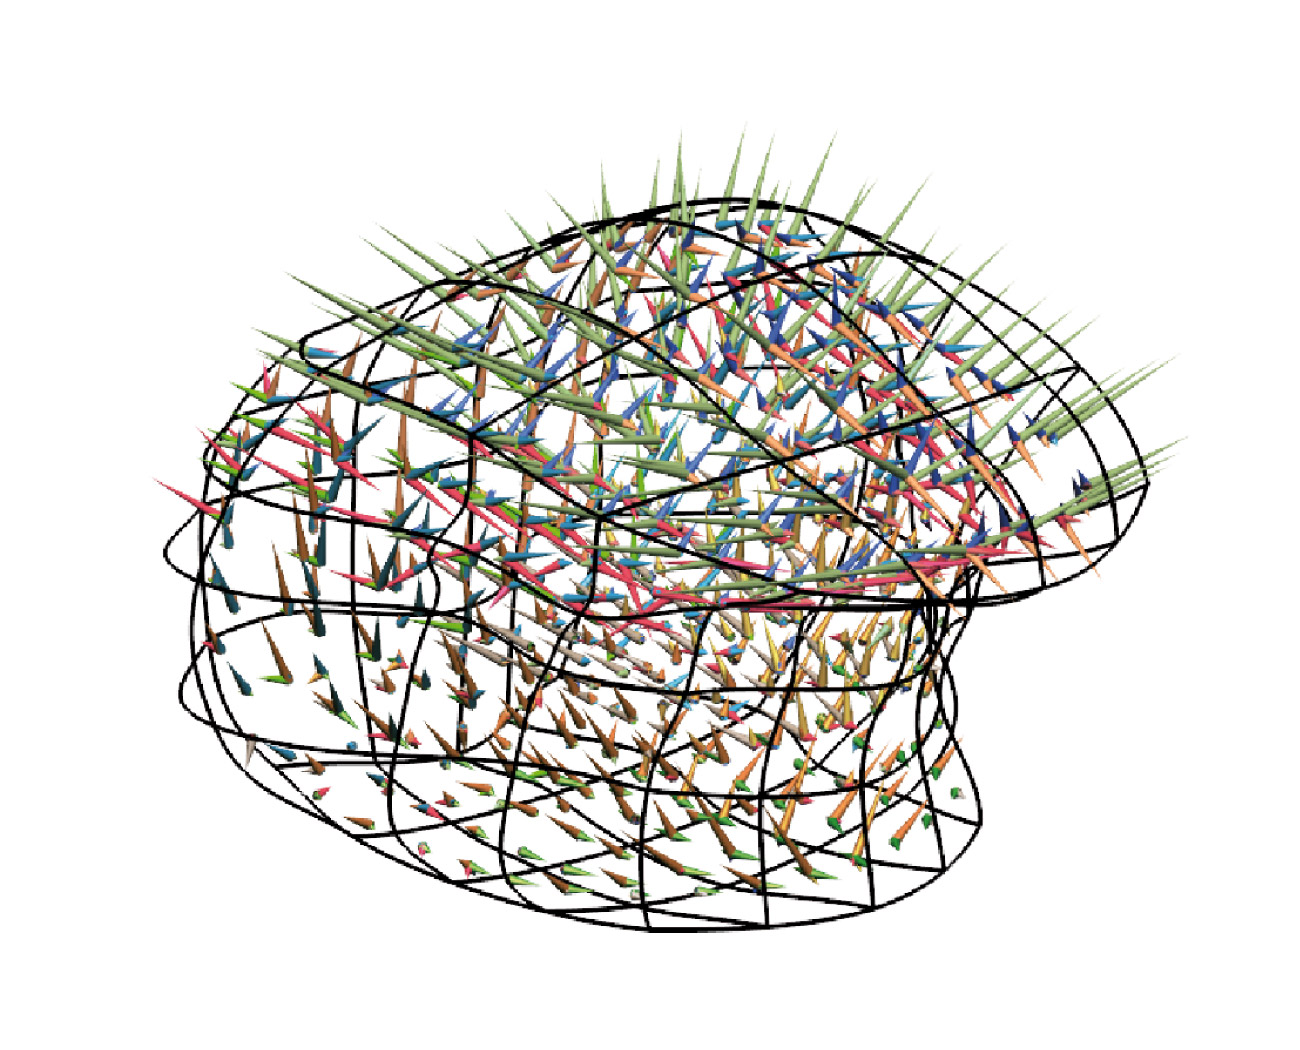 Model of the complex muscle fibre distribution of the tongue in which the cones depict the directions of the different muscle fibre groups and the length of the cones represents the scaled volume fraction taken up by a muscle fibre group within a representative volume.